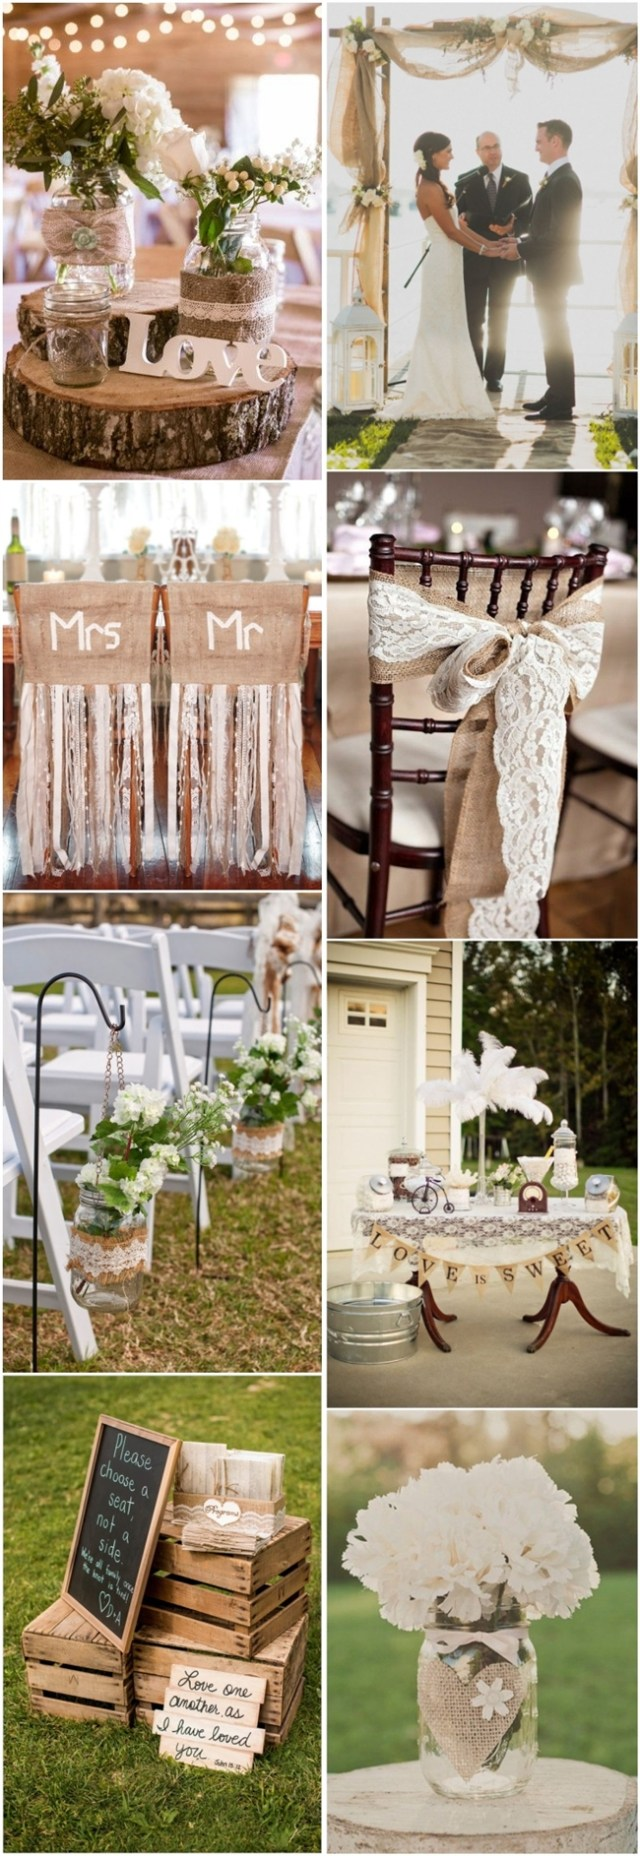 Cheap Rustic Wedding Decor 45 Chic Rustic Burlap Lace Wedding Ideas And Inspiration Tulle